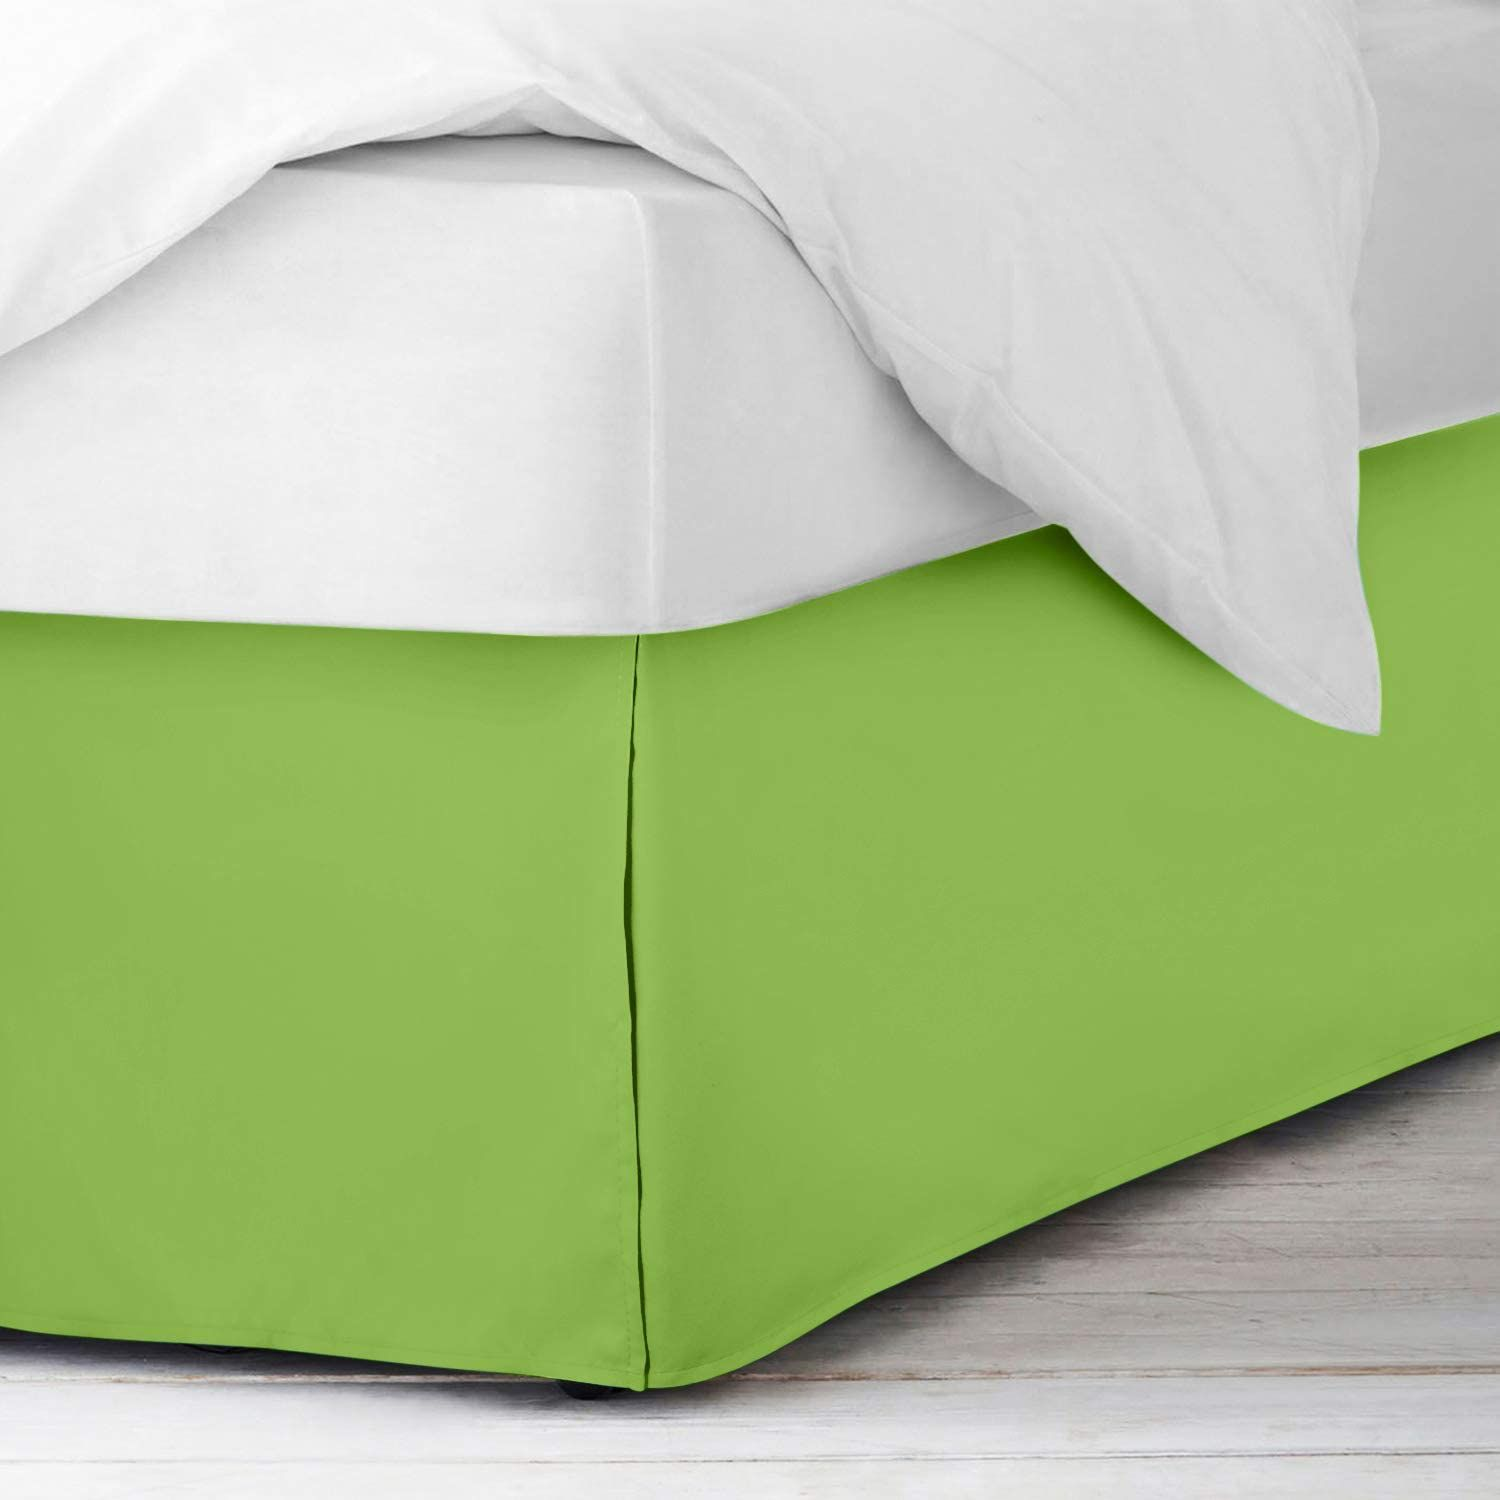 Sage Green Bed Skirt Solid Bliss 400tc In 2021 Green Bedding Bedskirt Best Thread Count Green bed skirt queen